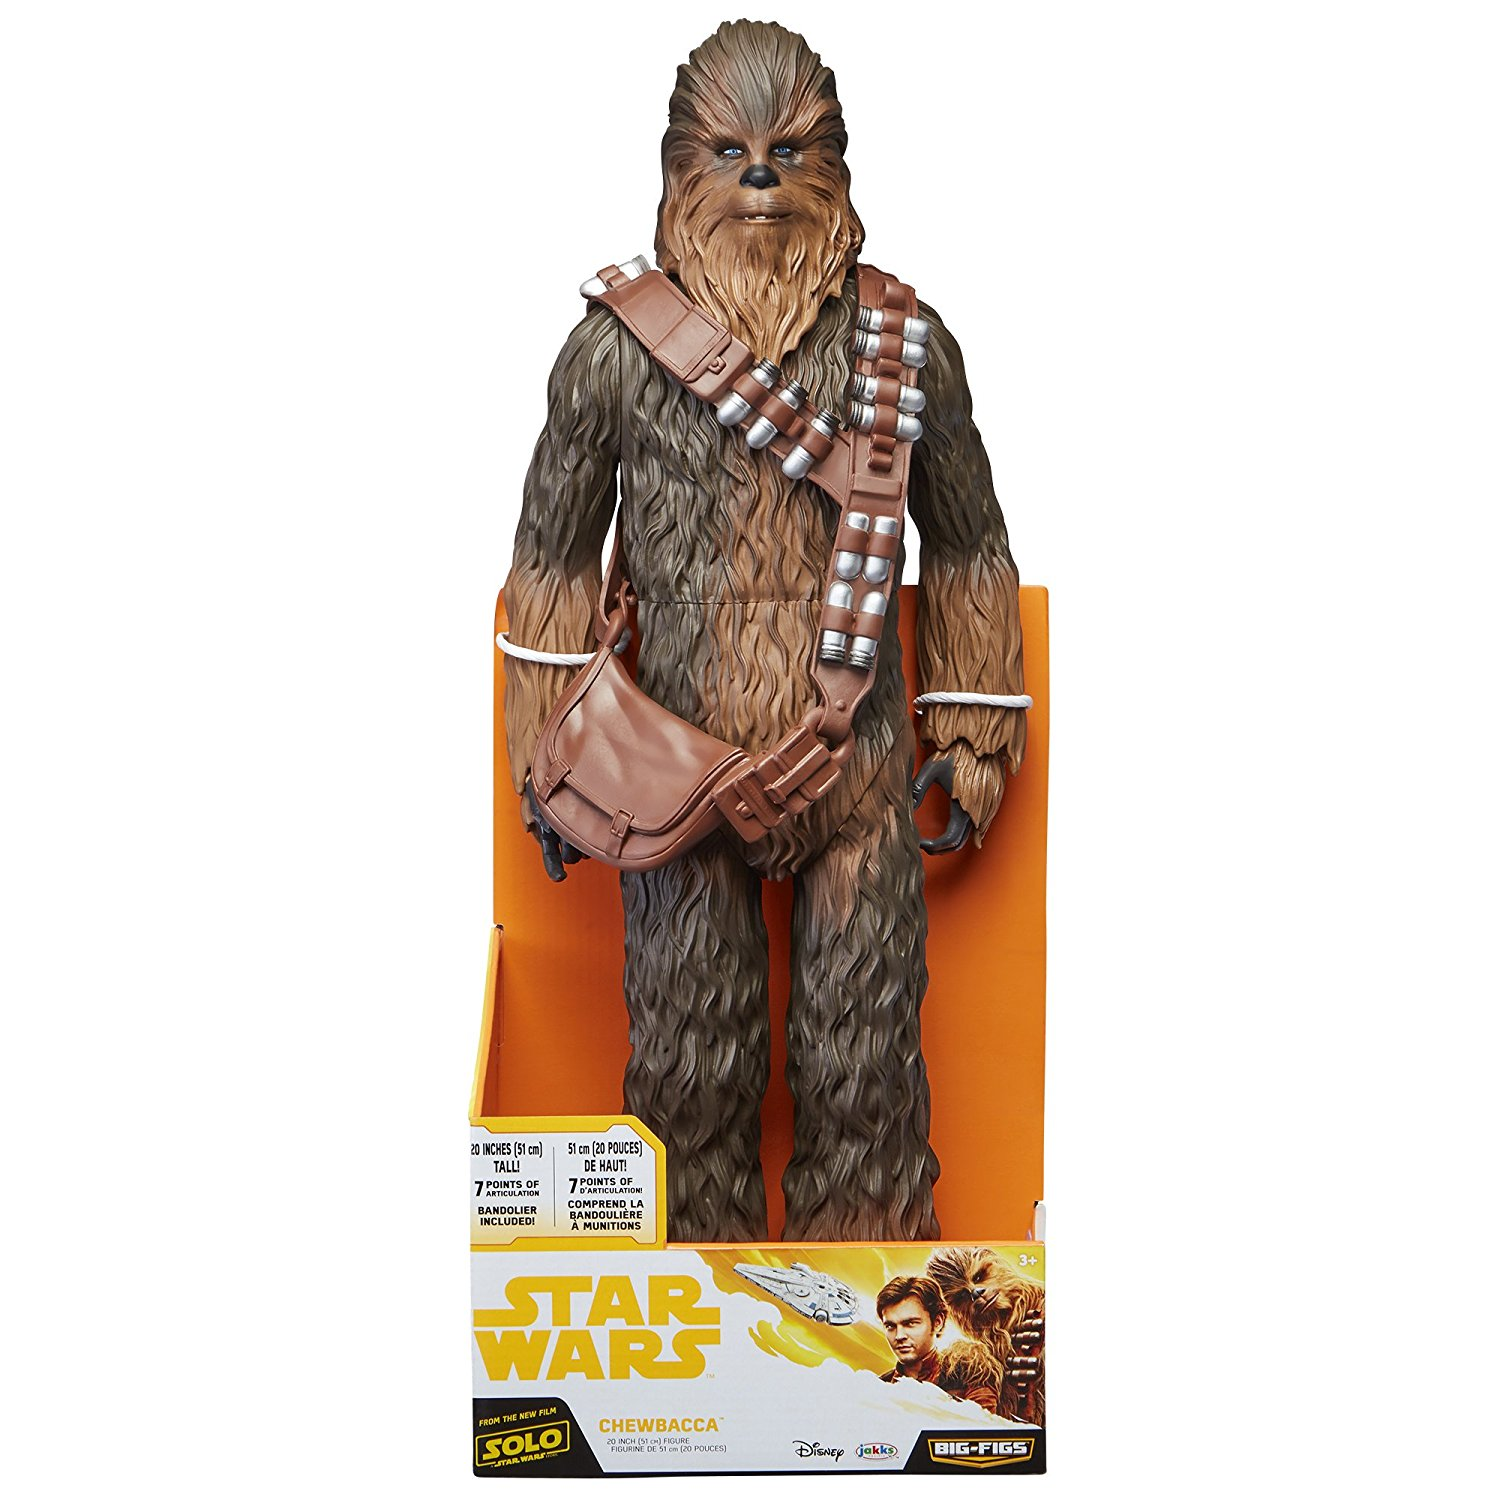 Jakks Pacific – Solo: A Star Wars Story Han Solo, Chewbacca & Mud Trooper Available On Amazon